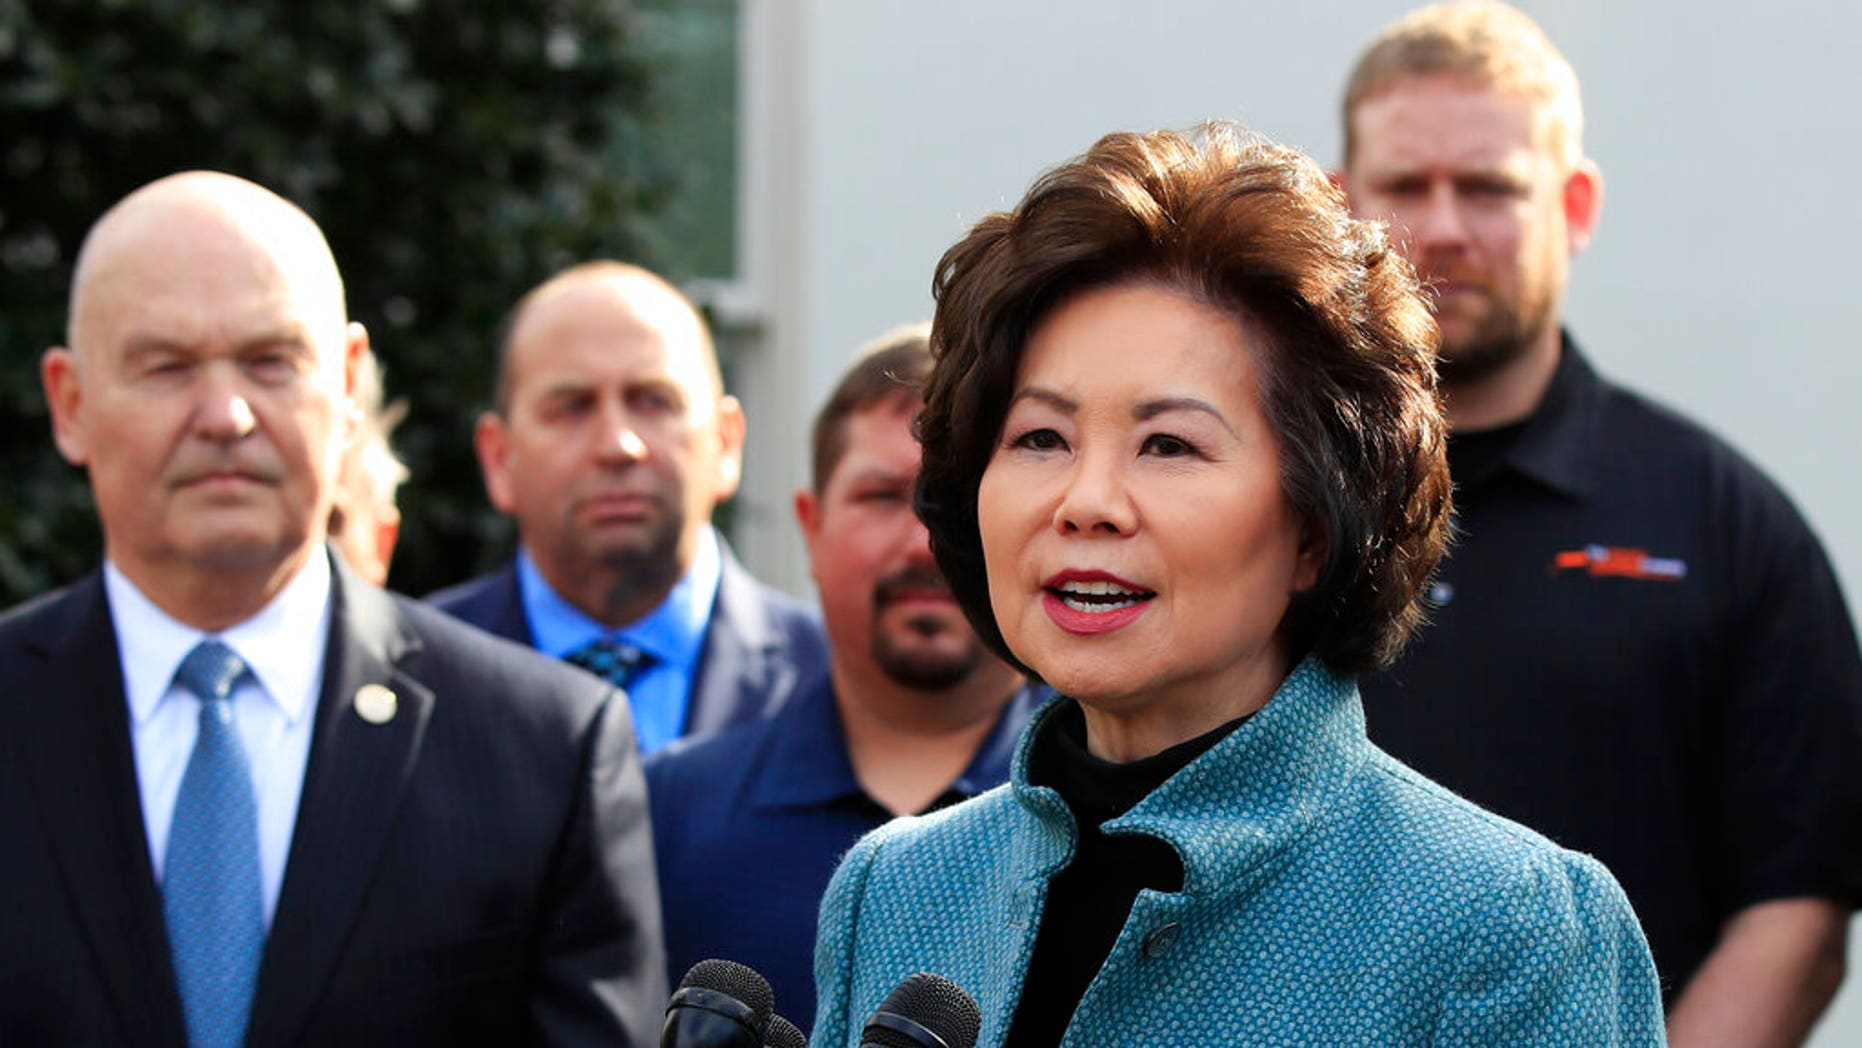 Transportation Secretary Elaine Chao, right, with U.S. Maritime Administration Administrator Mark Buzby, speaks to reporters outside the West Wing of the White House. (Associated Press)